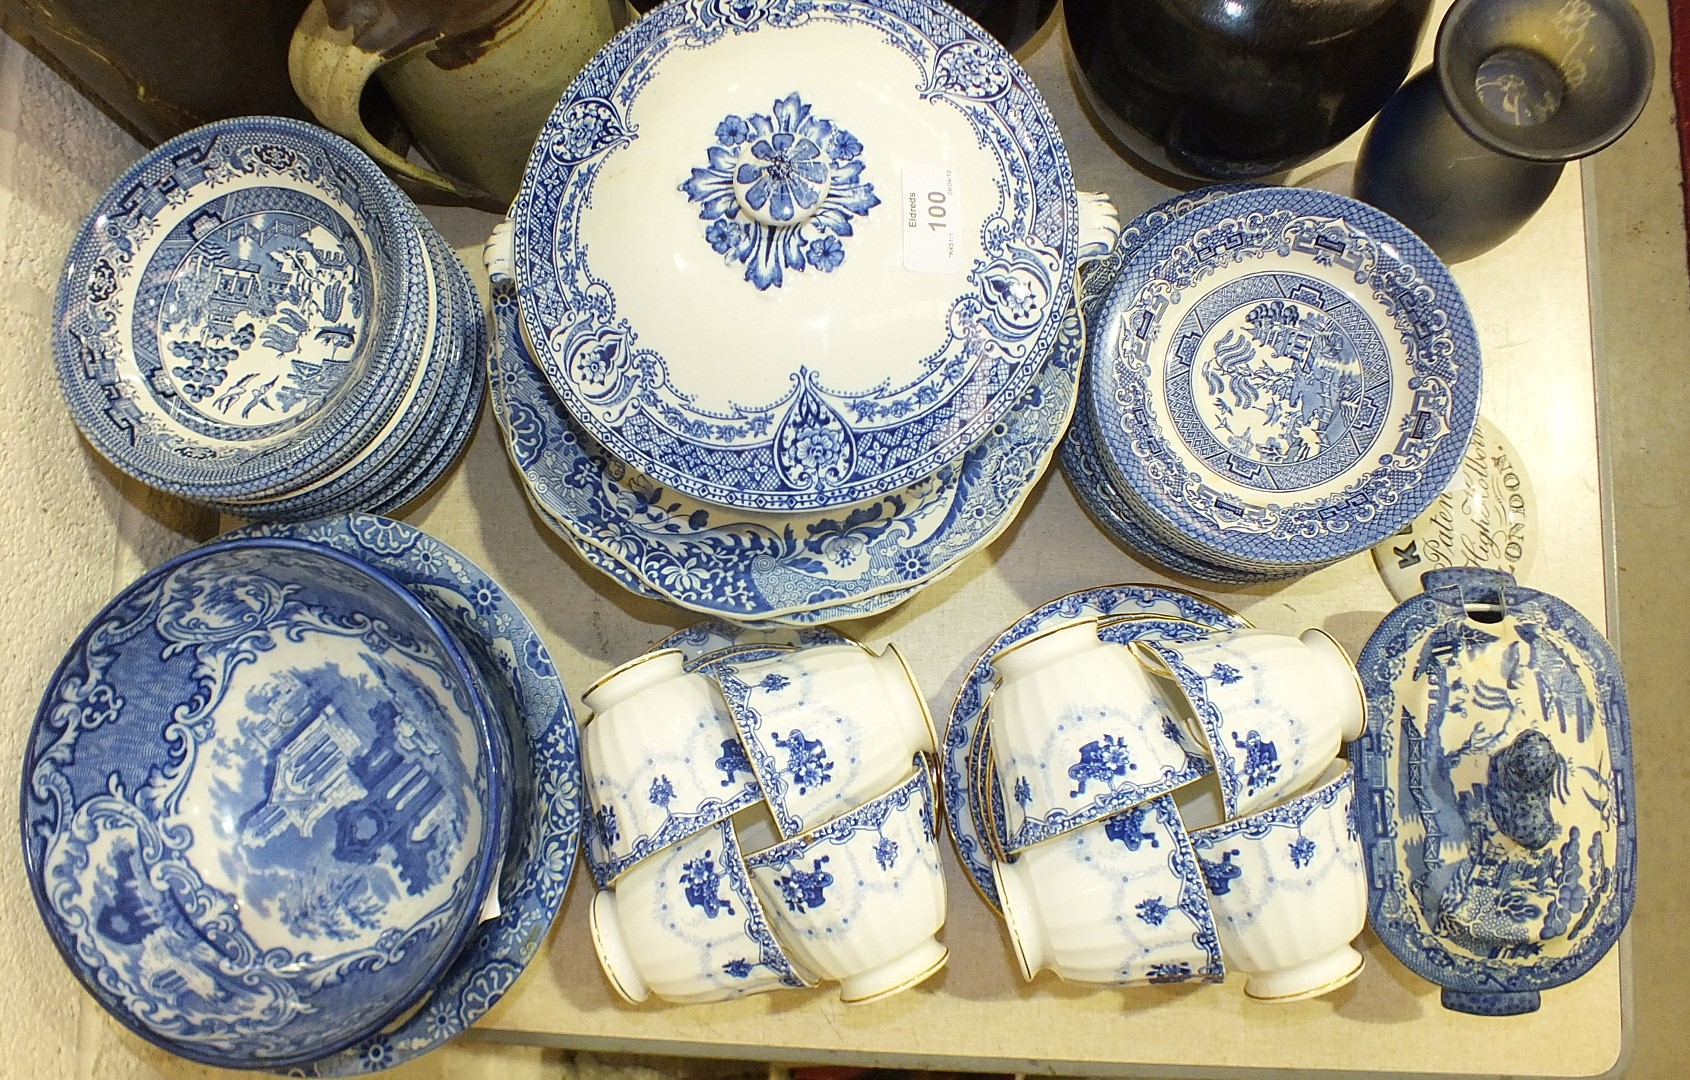 Lot 100 - A collection of blue and white tea and dinnerware, including willow pattern, and other ceramics,